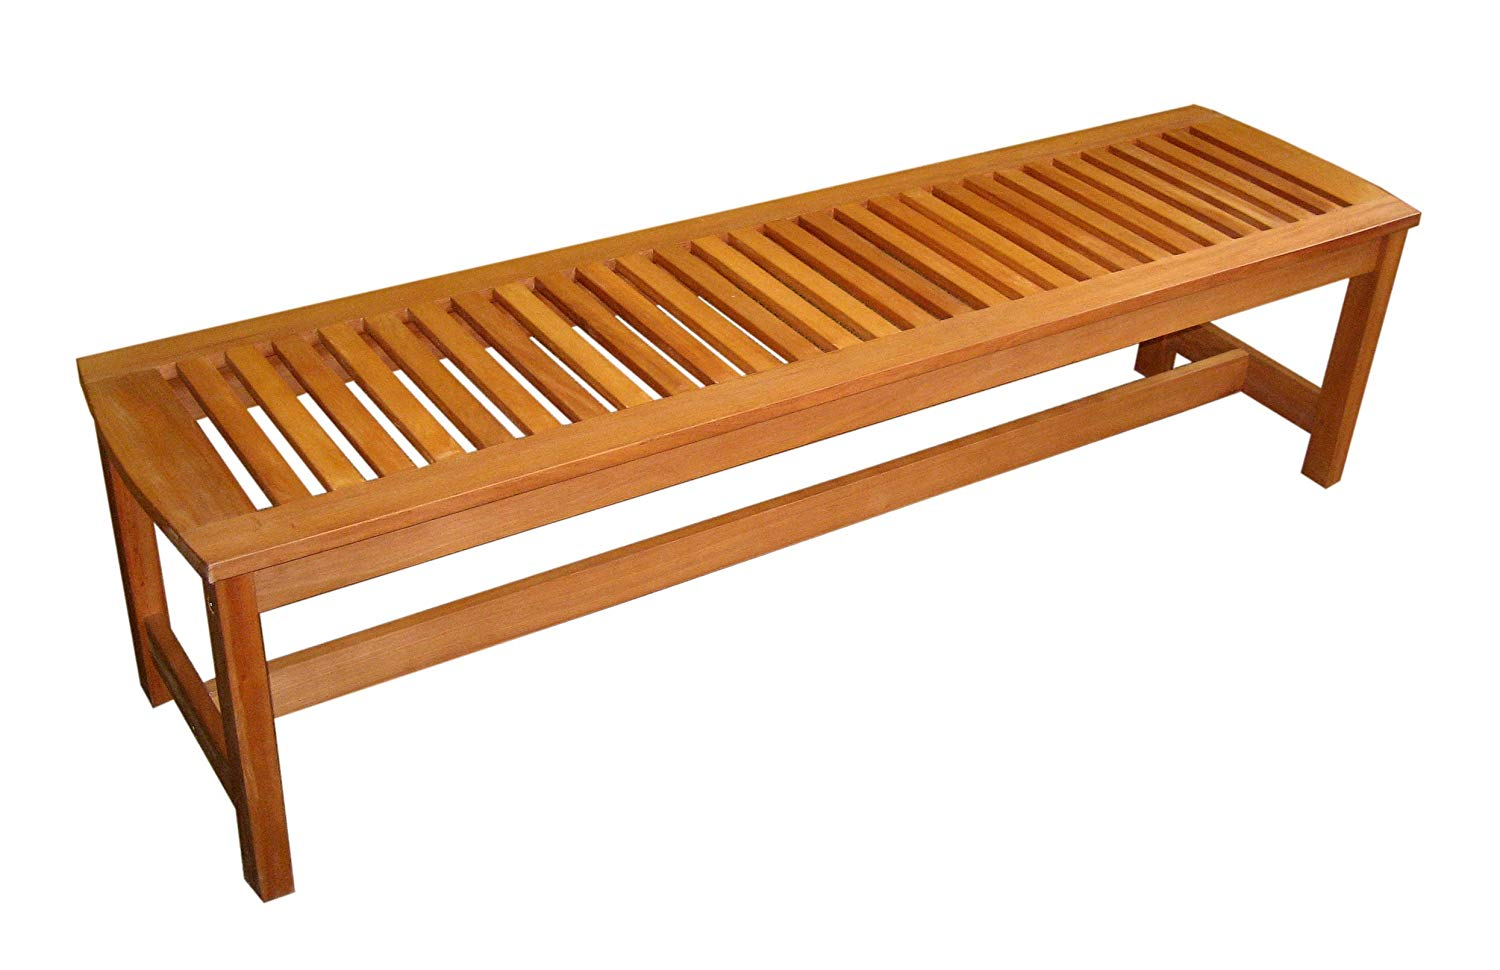 outdoor benches amazon.com : arboria outdoor bench backless large 5 foot length premium FHBOFJQ